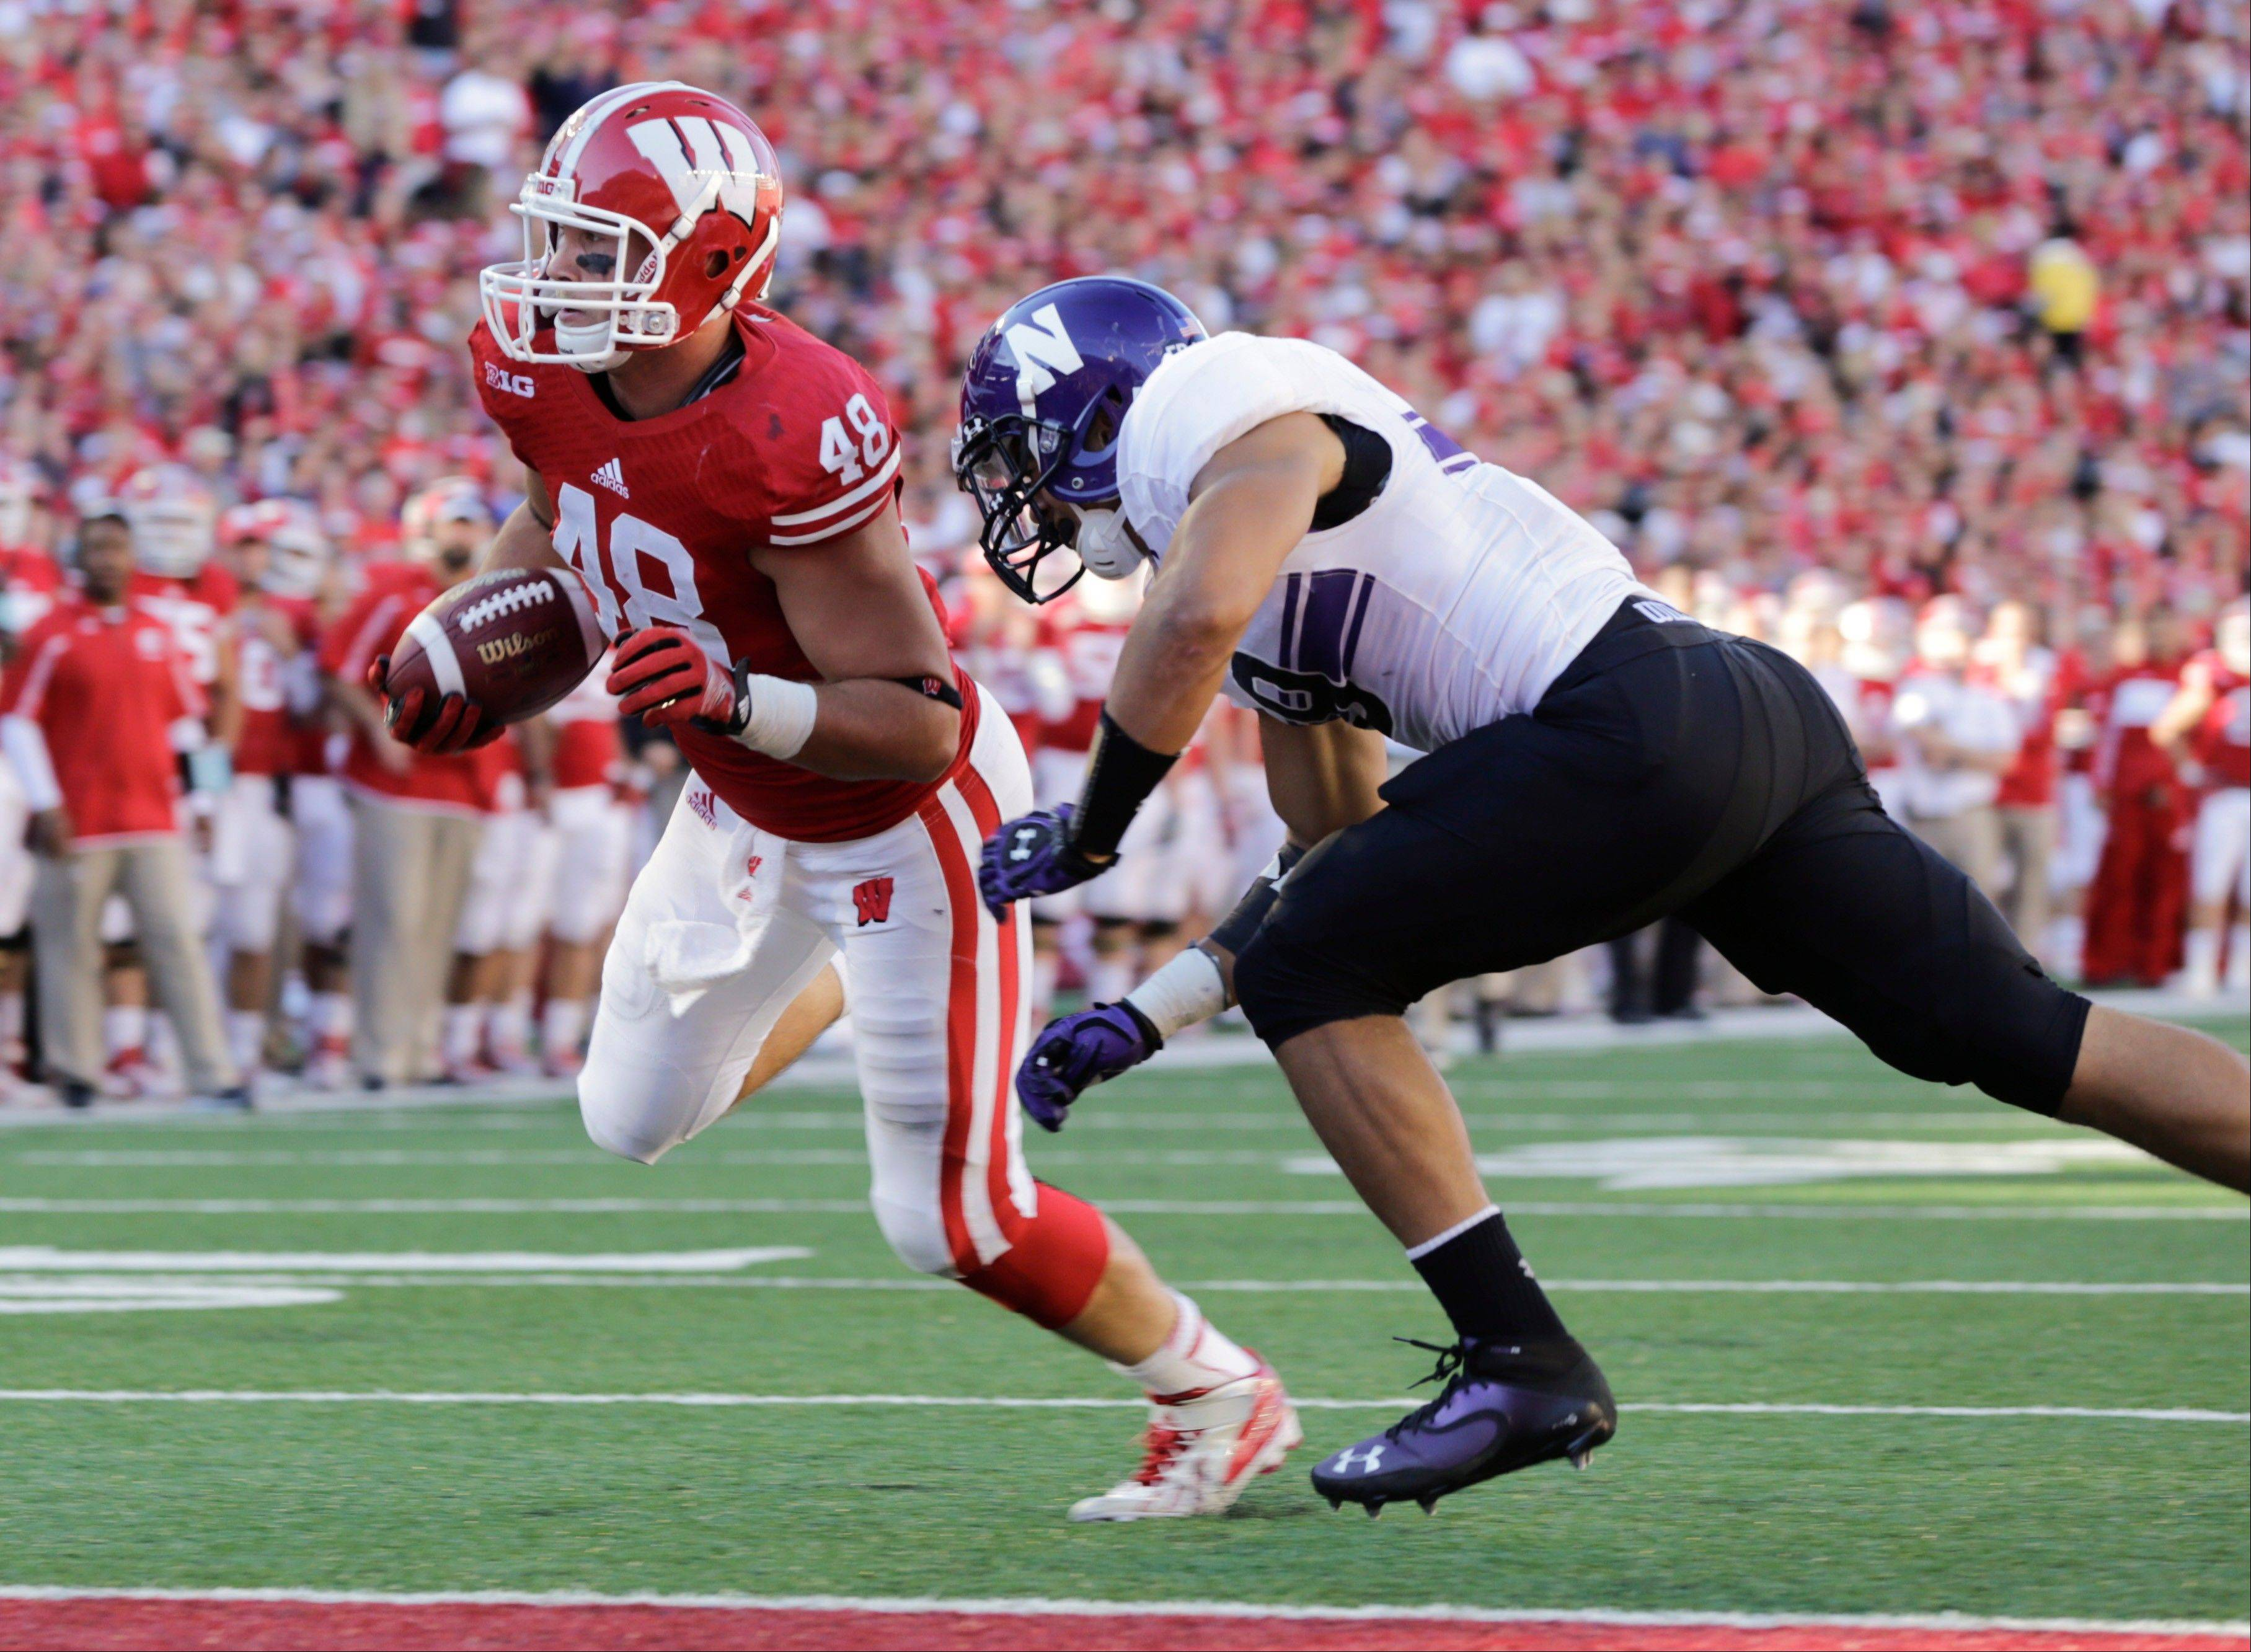 Wisconsin tight end Jacob Pedersen runs in for a 1-yard touchdown against Northwestern safety Jimmy Hall during the second half of Saturday�s game in Madison. Wisconsin upset Northwestern 35-6.